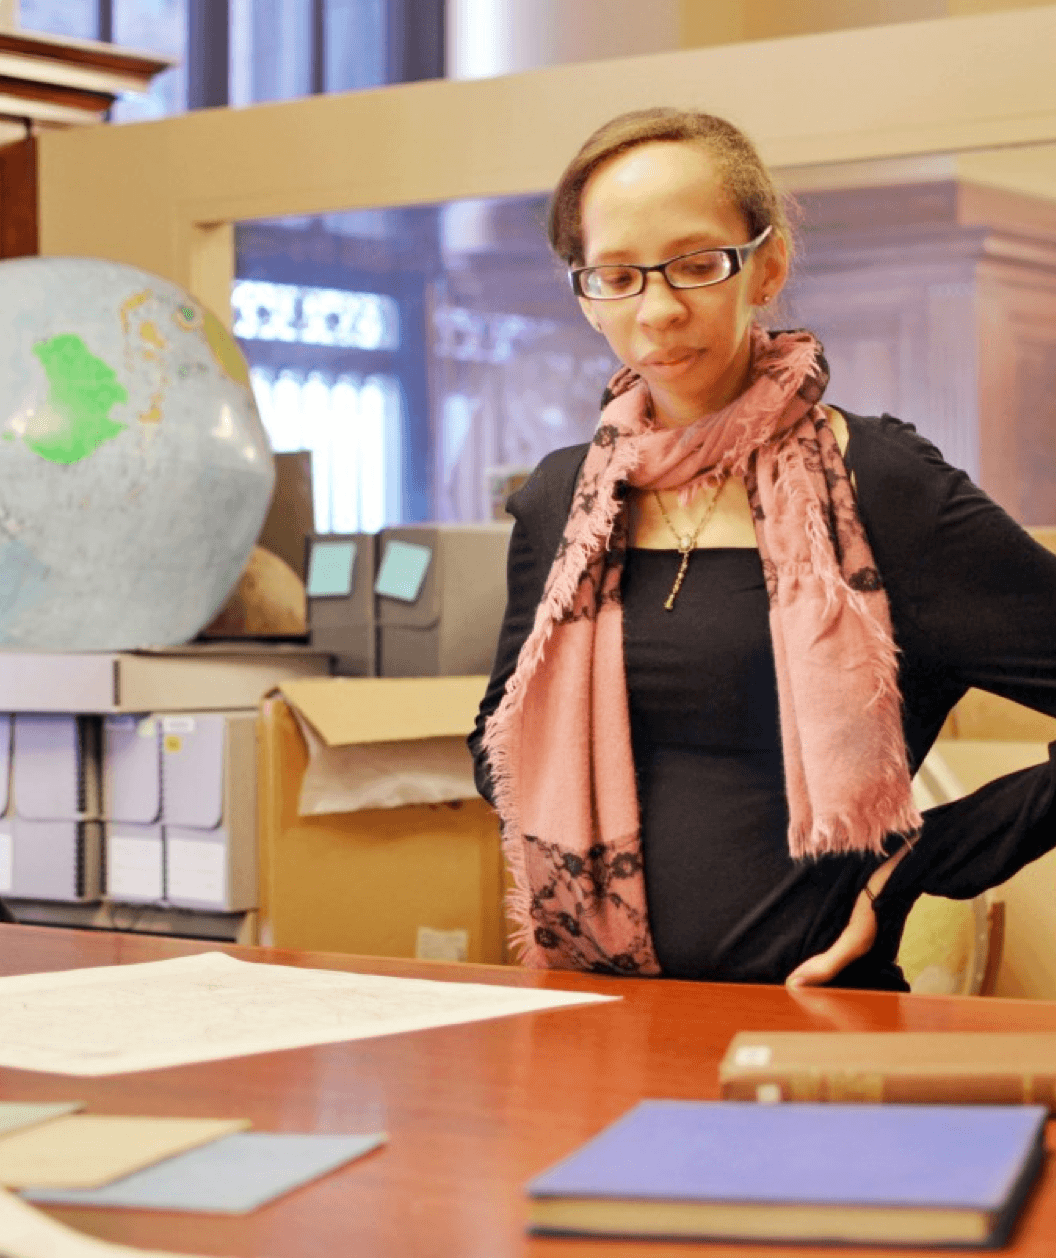 Irene Morrison-Moncure at the NYPL Mapping Division